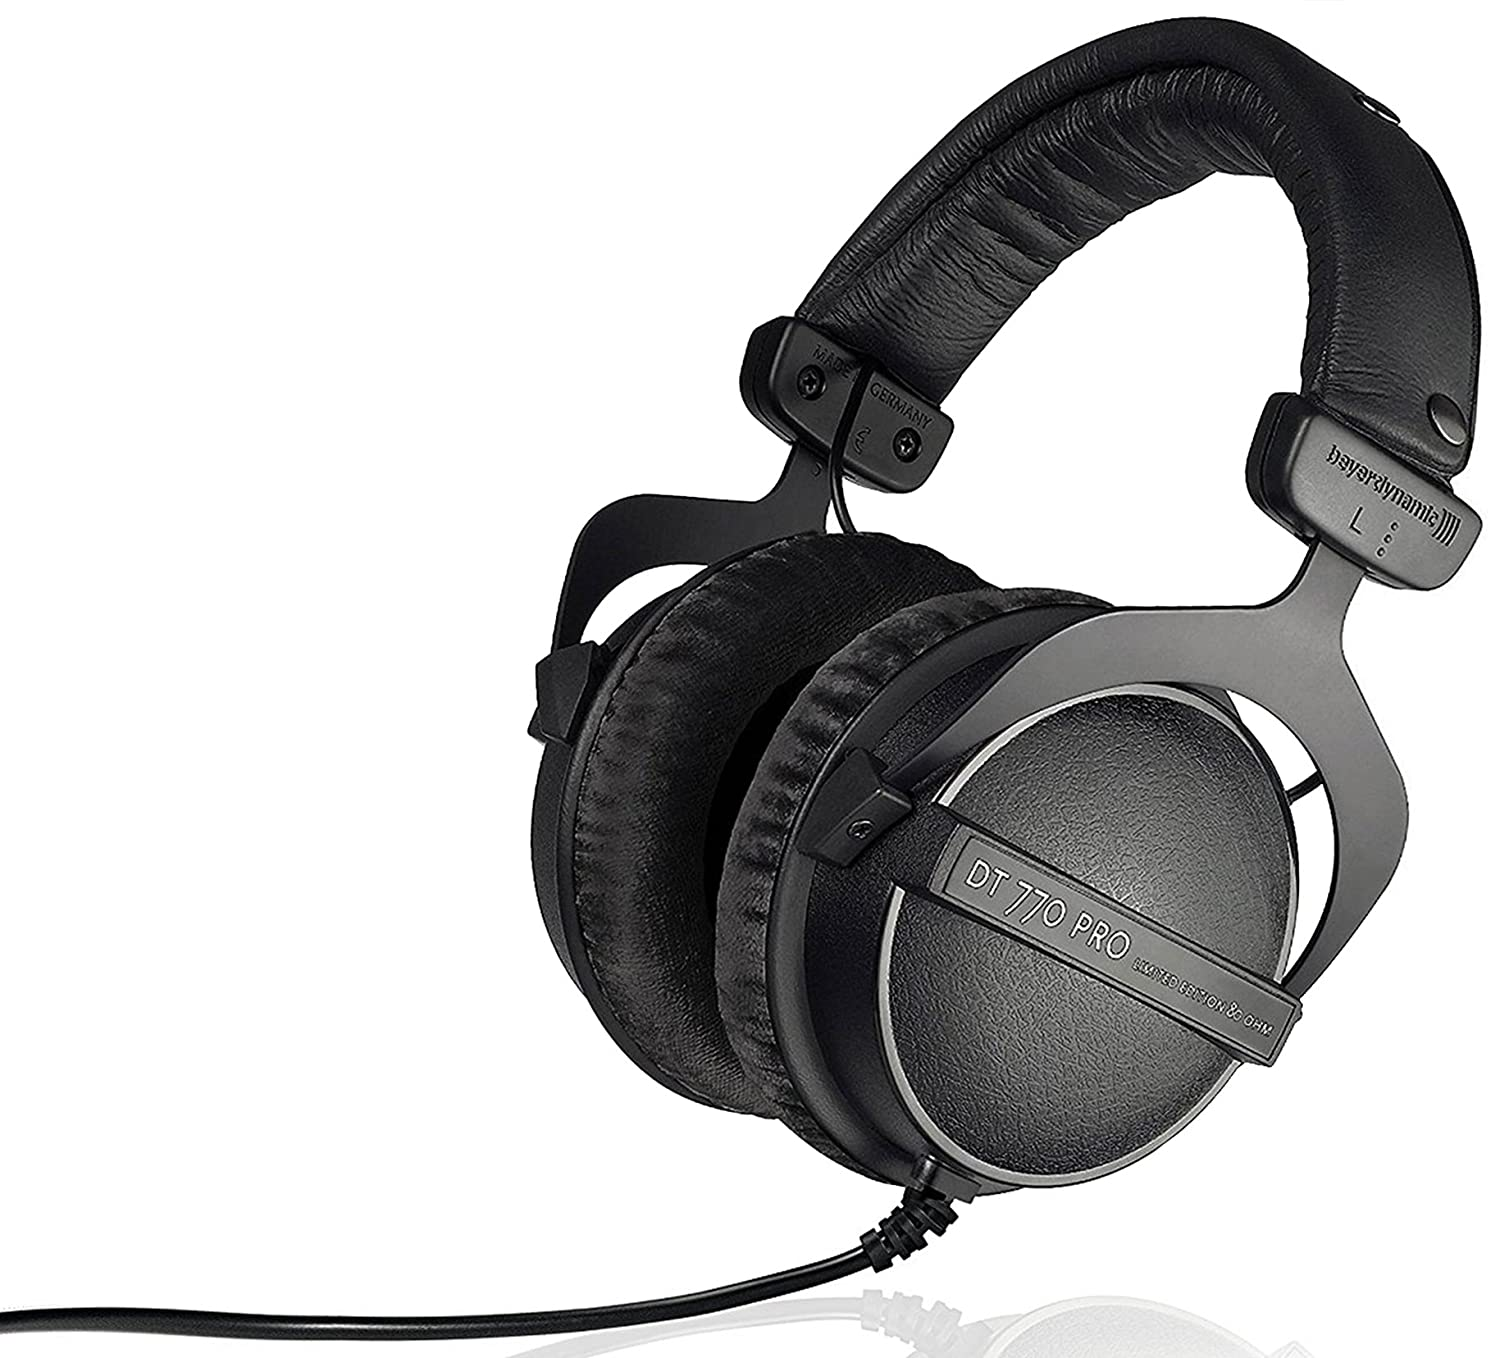 Beyerdynamic DT 770 Pro 80 ohm Limited Edition Professional Studio Headphones DT 770 PRO 80 OHM LE BLACK